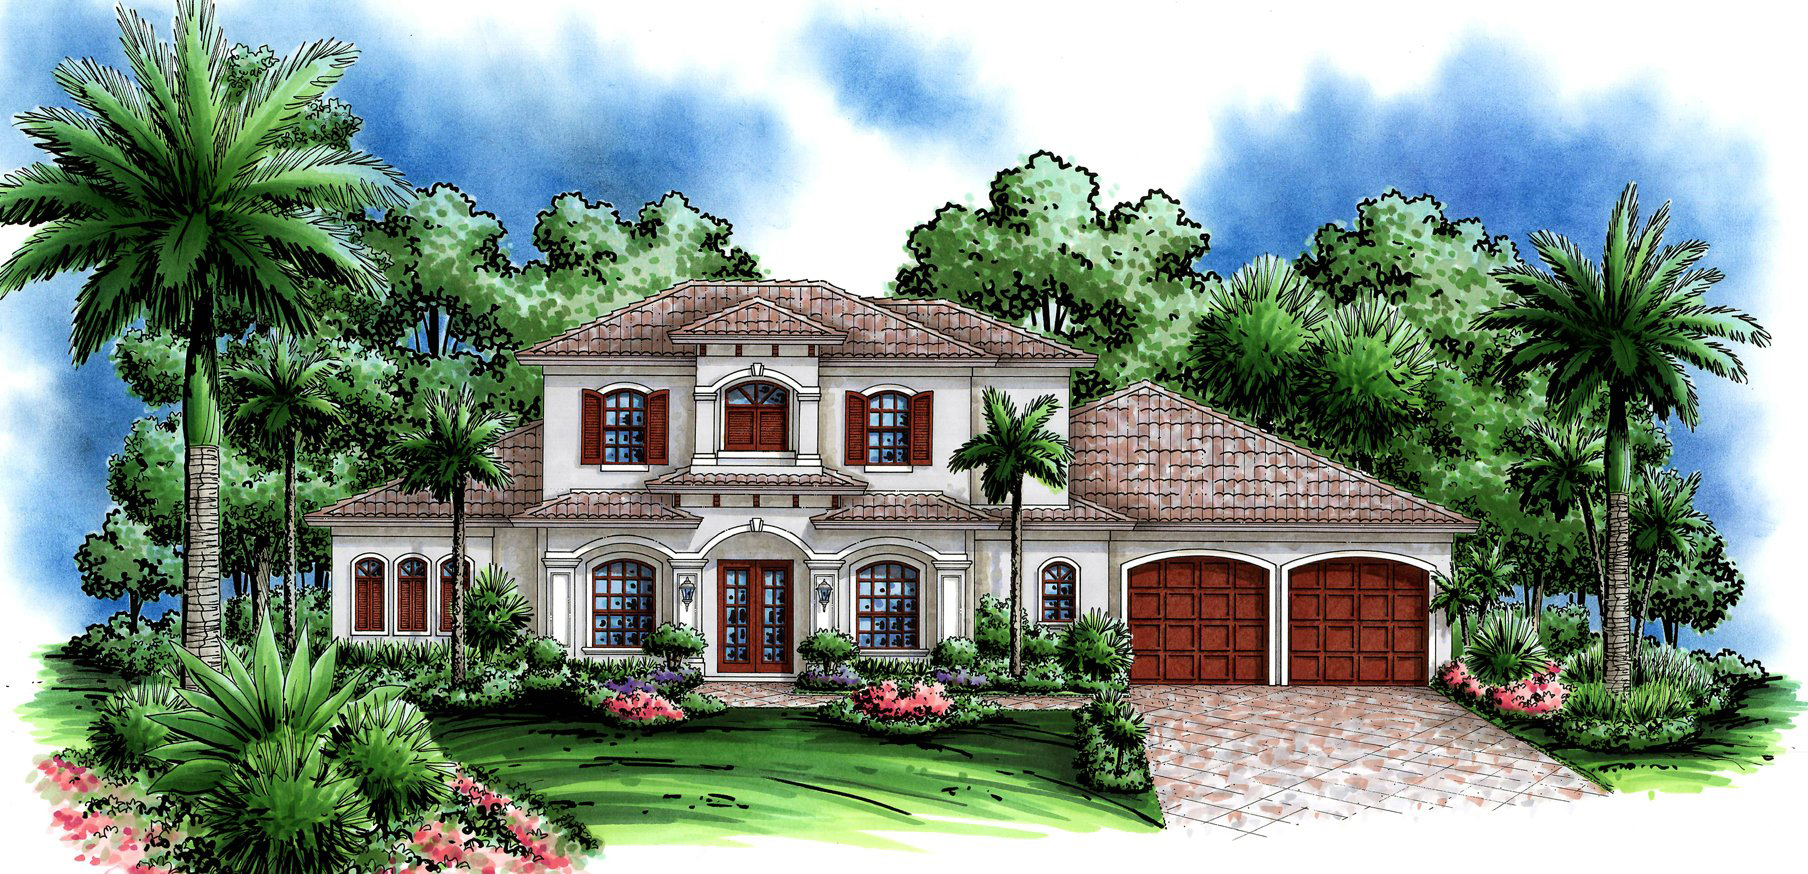 Palermo custom home front elevation